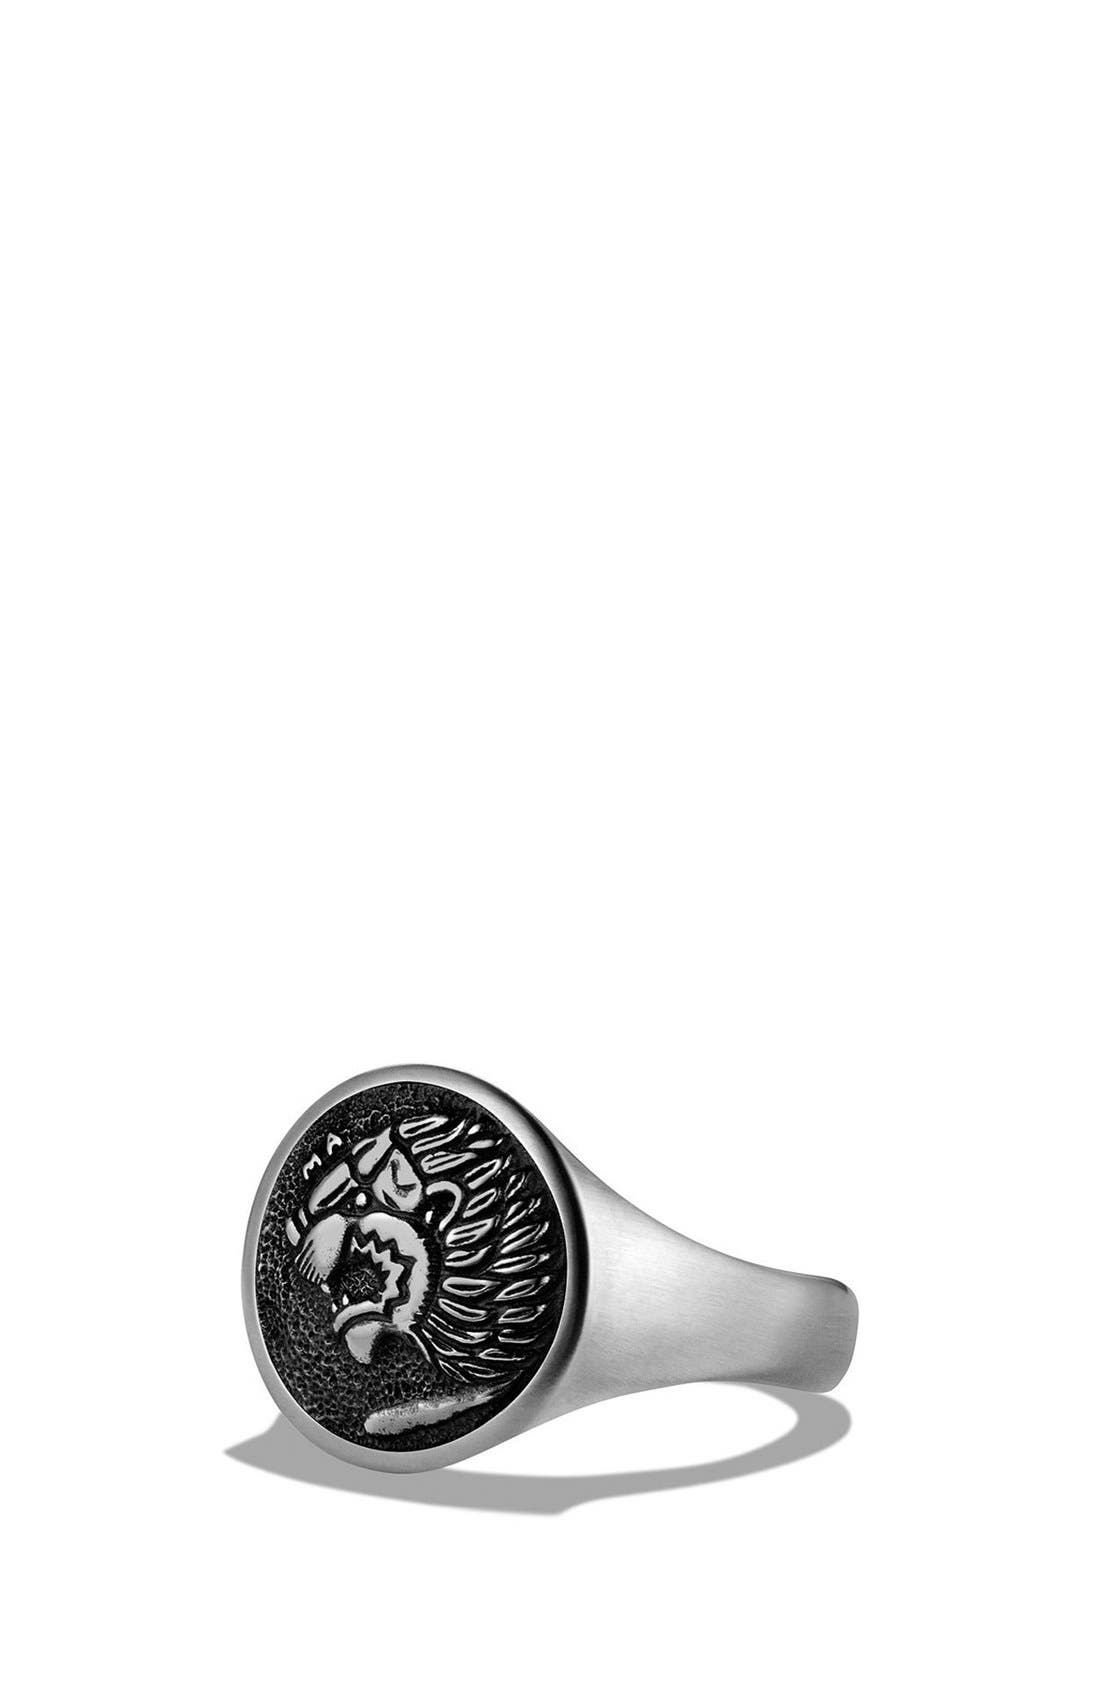 'Petrvs' Lion Signet Pinky Ring,                             Main thumbnail 1, color,                             SILVER